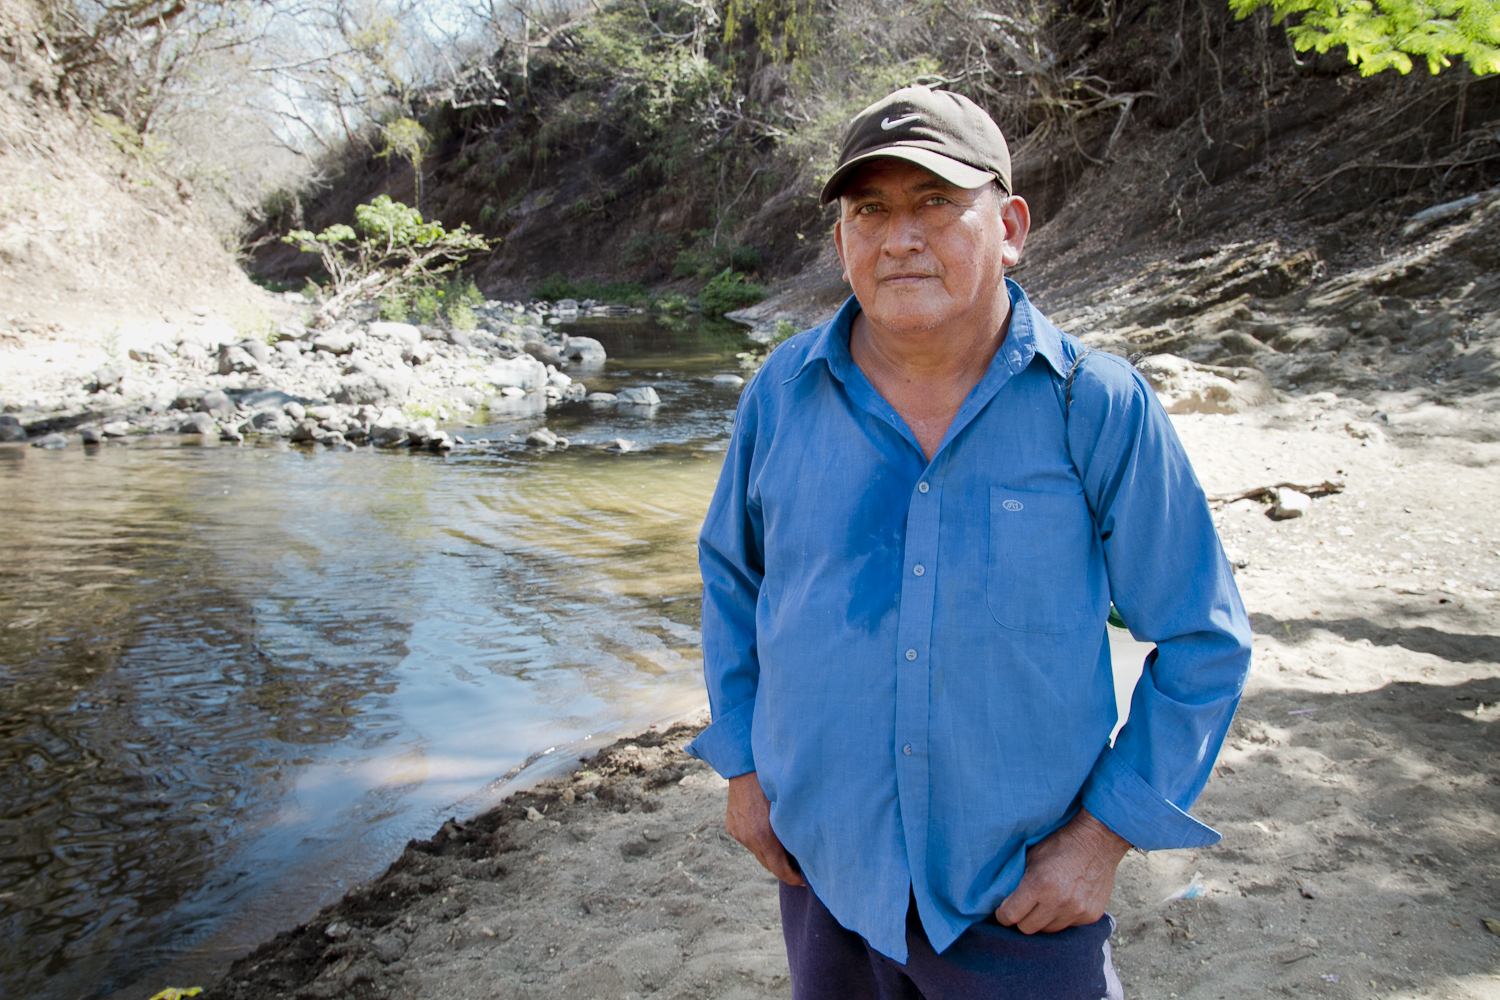 """Símeón Alvarez was one of the first to return to Amatitán 10 years after  the massacre took place. At the Río Amatitán (Amatitán River), Alvarez  says he found bloodied clothing of those murdered by the military police at the river, and that  years later, blood still stained the rocks at the riverside. Today, a  monument stands at the river with the names of those murdered in the  1982 massacre, which is now remembered as """"El Calabozo,"""" or The Dungeon."""